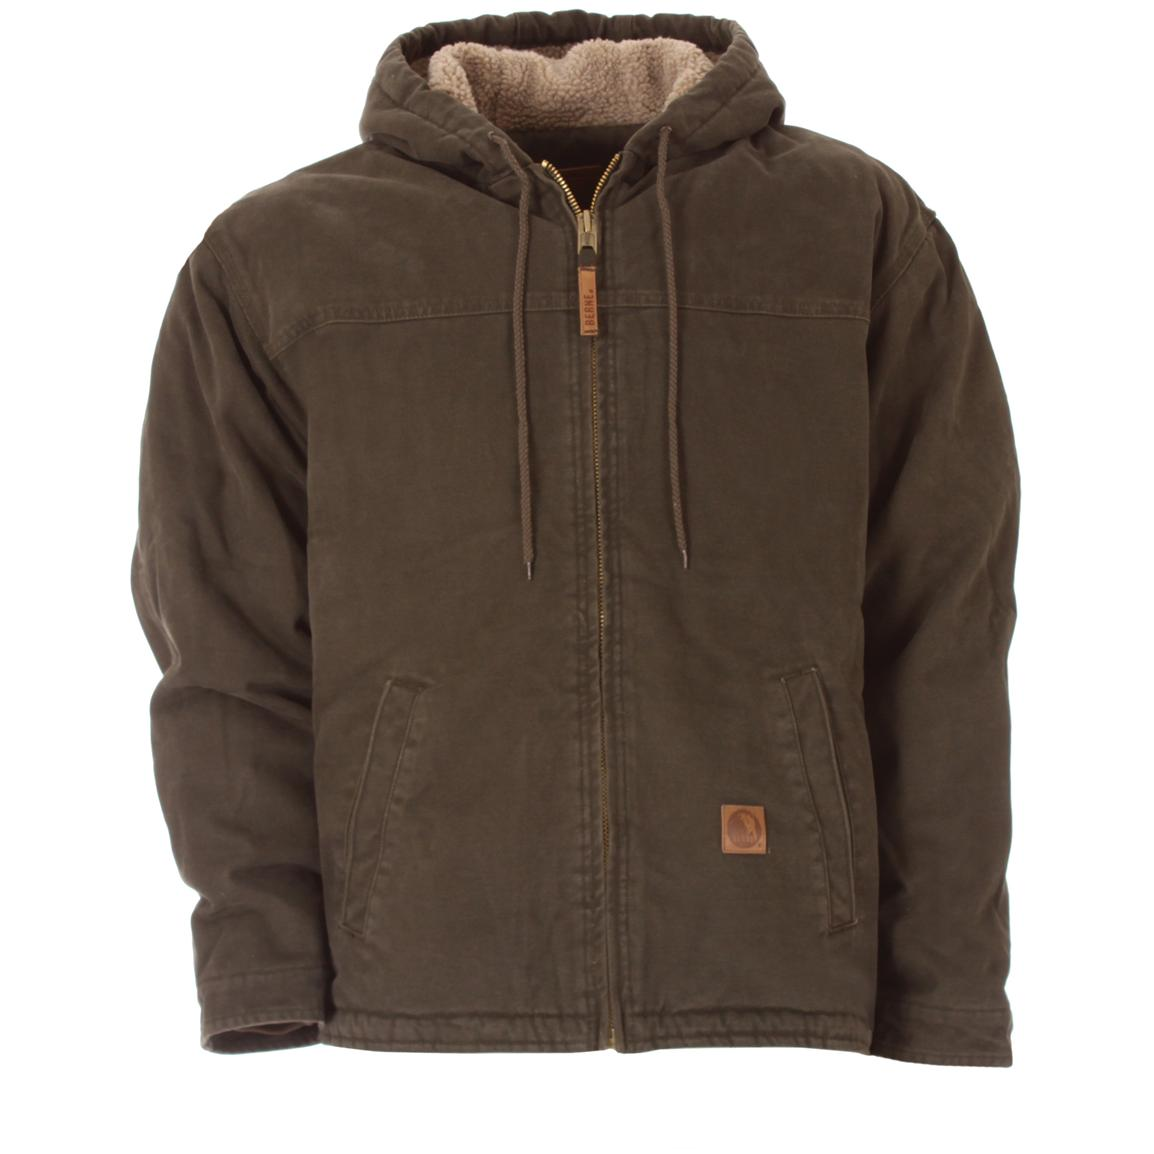 Men's Berne® Sanded Hooded Work Jacket, Olive Duck